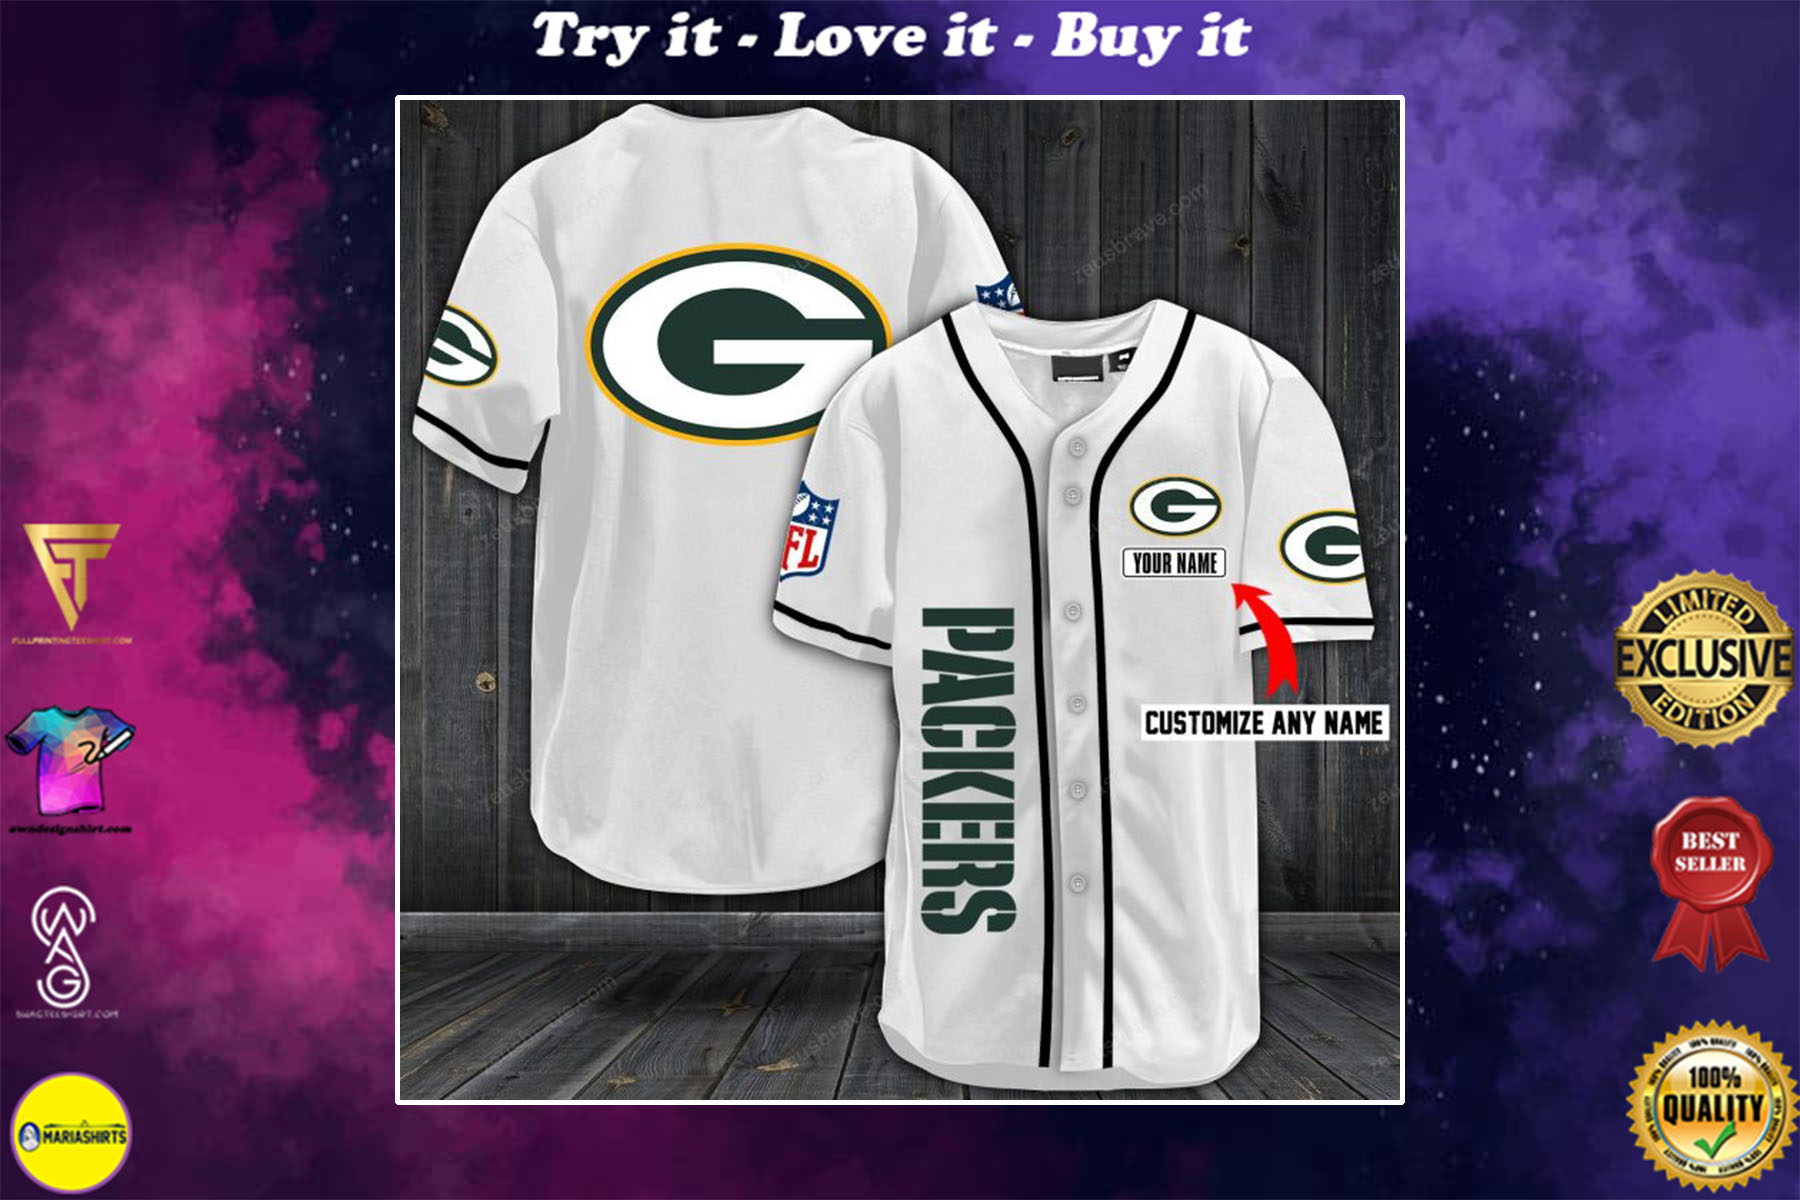 [special edition] personalized name jersey green bay packers full printing shirt - maria